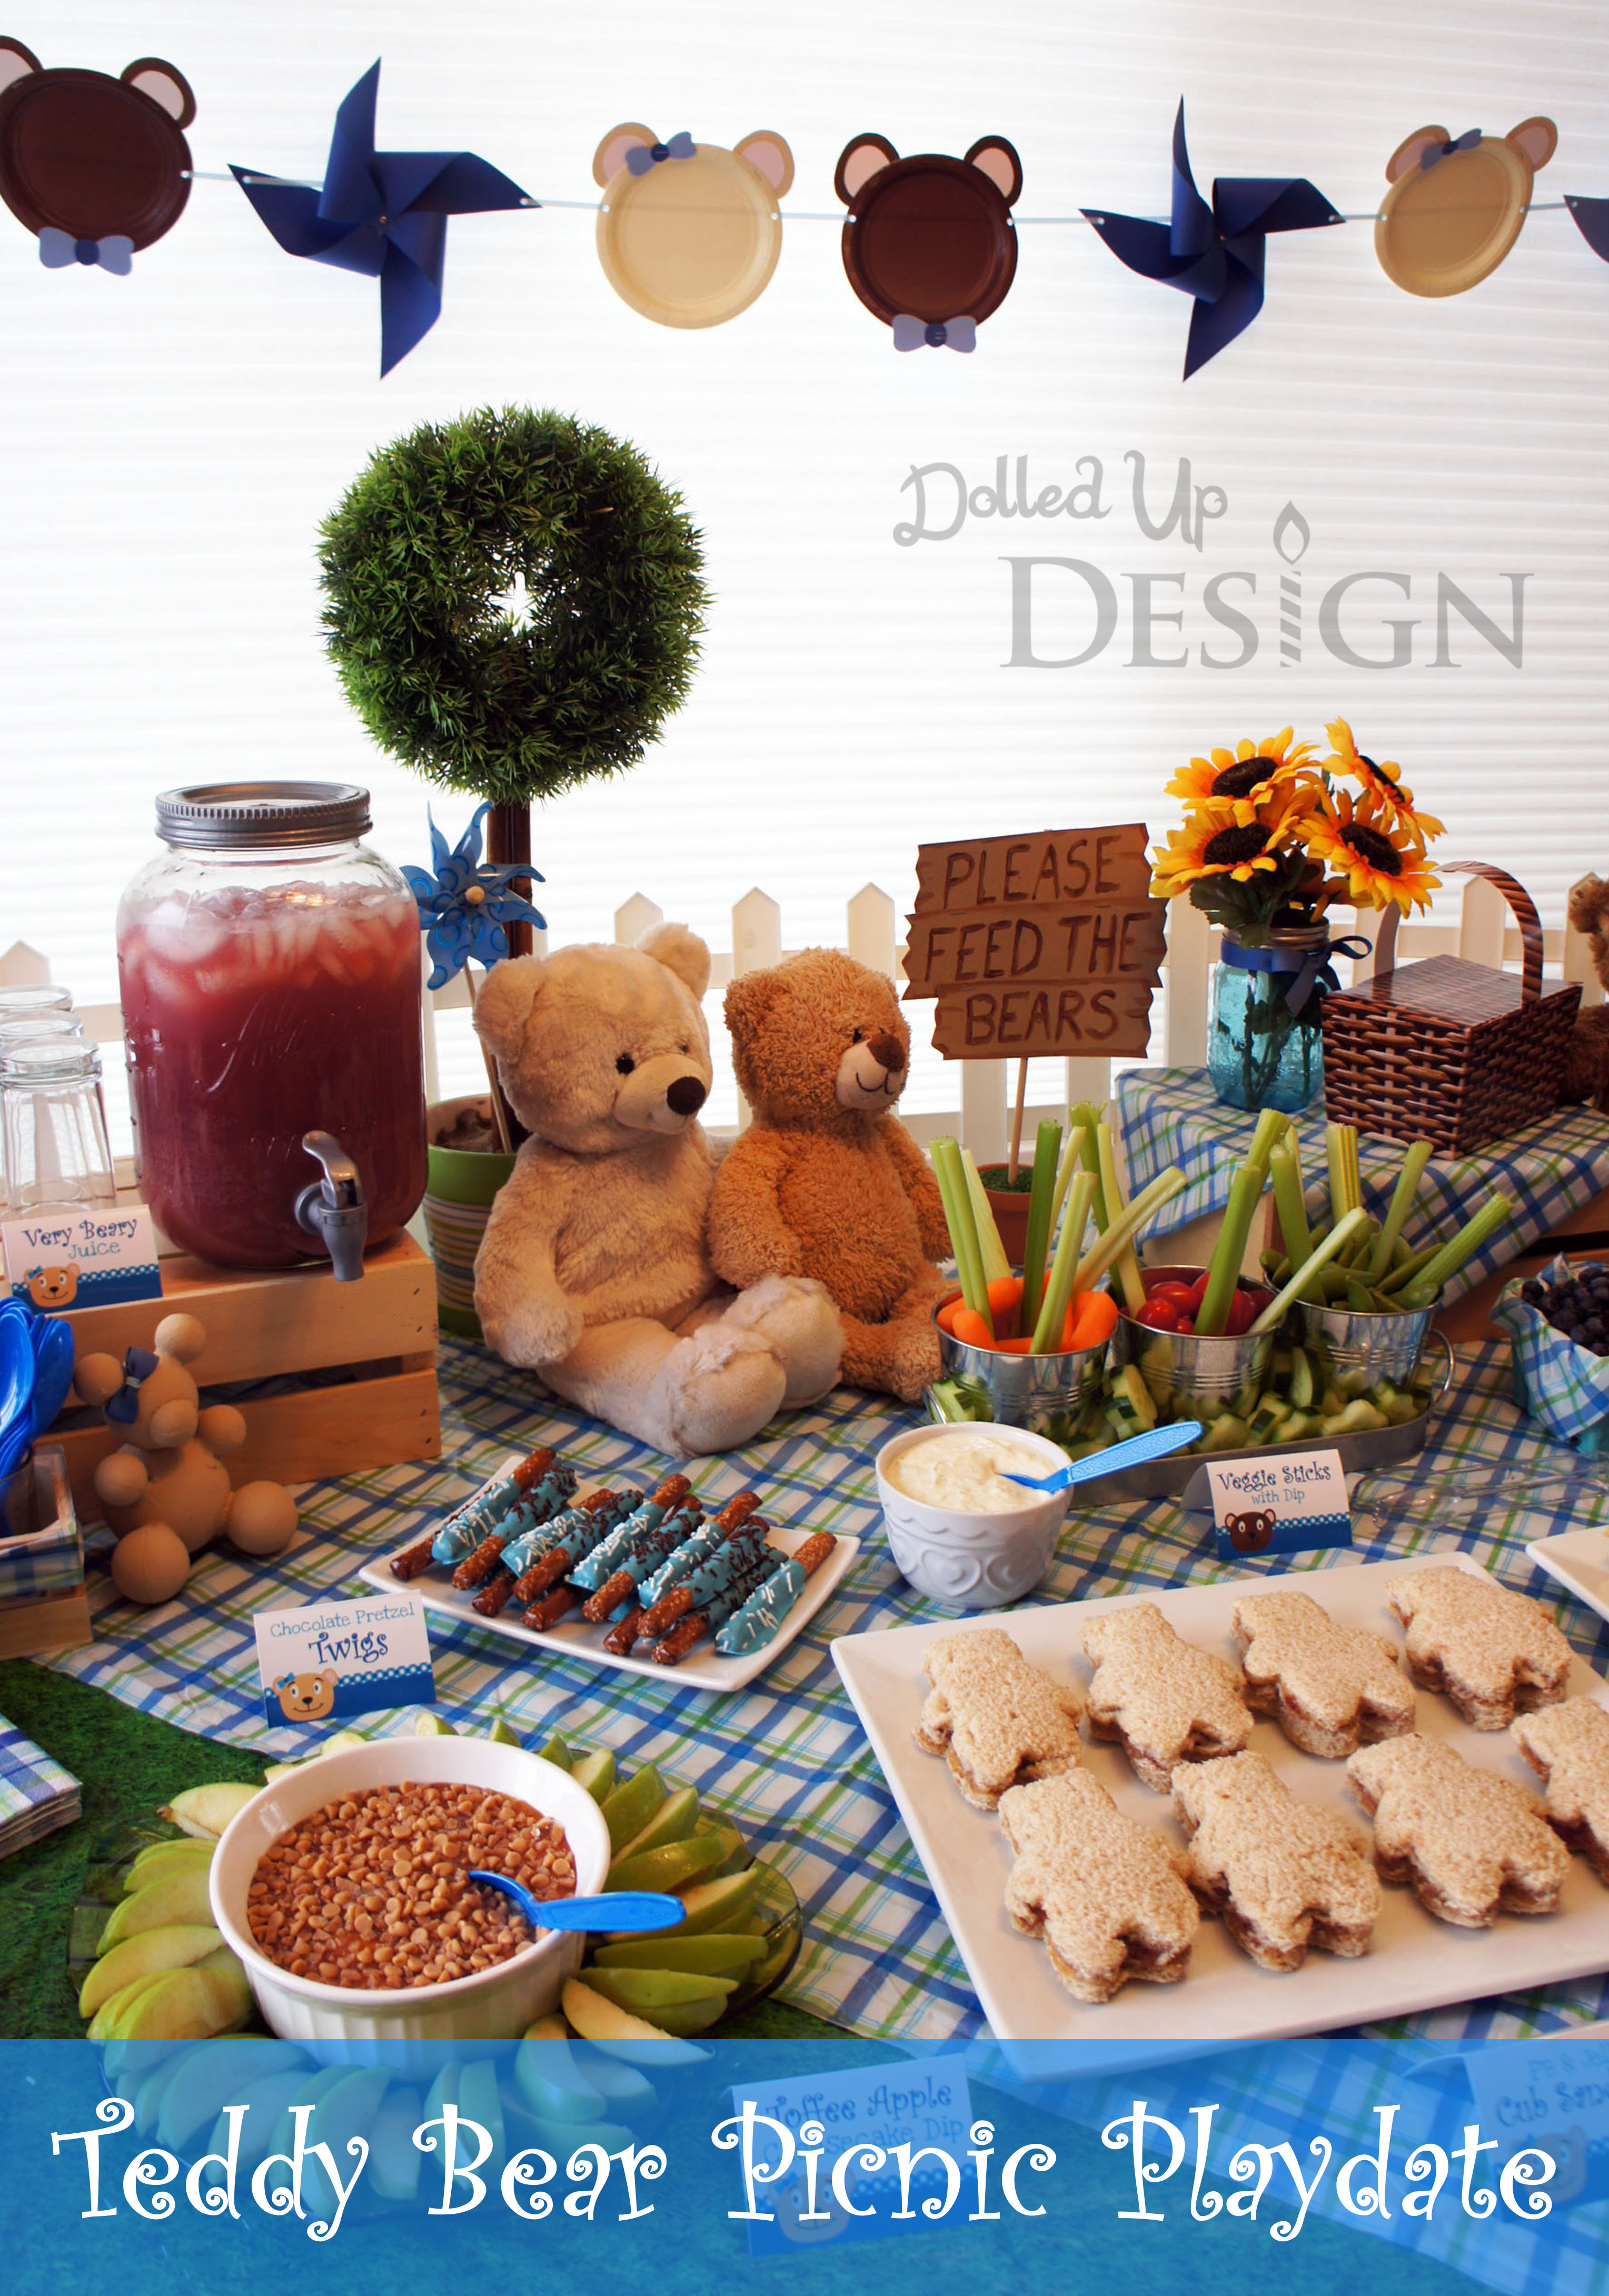 Picnic Time for Teddy Bears!